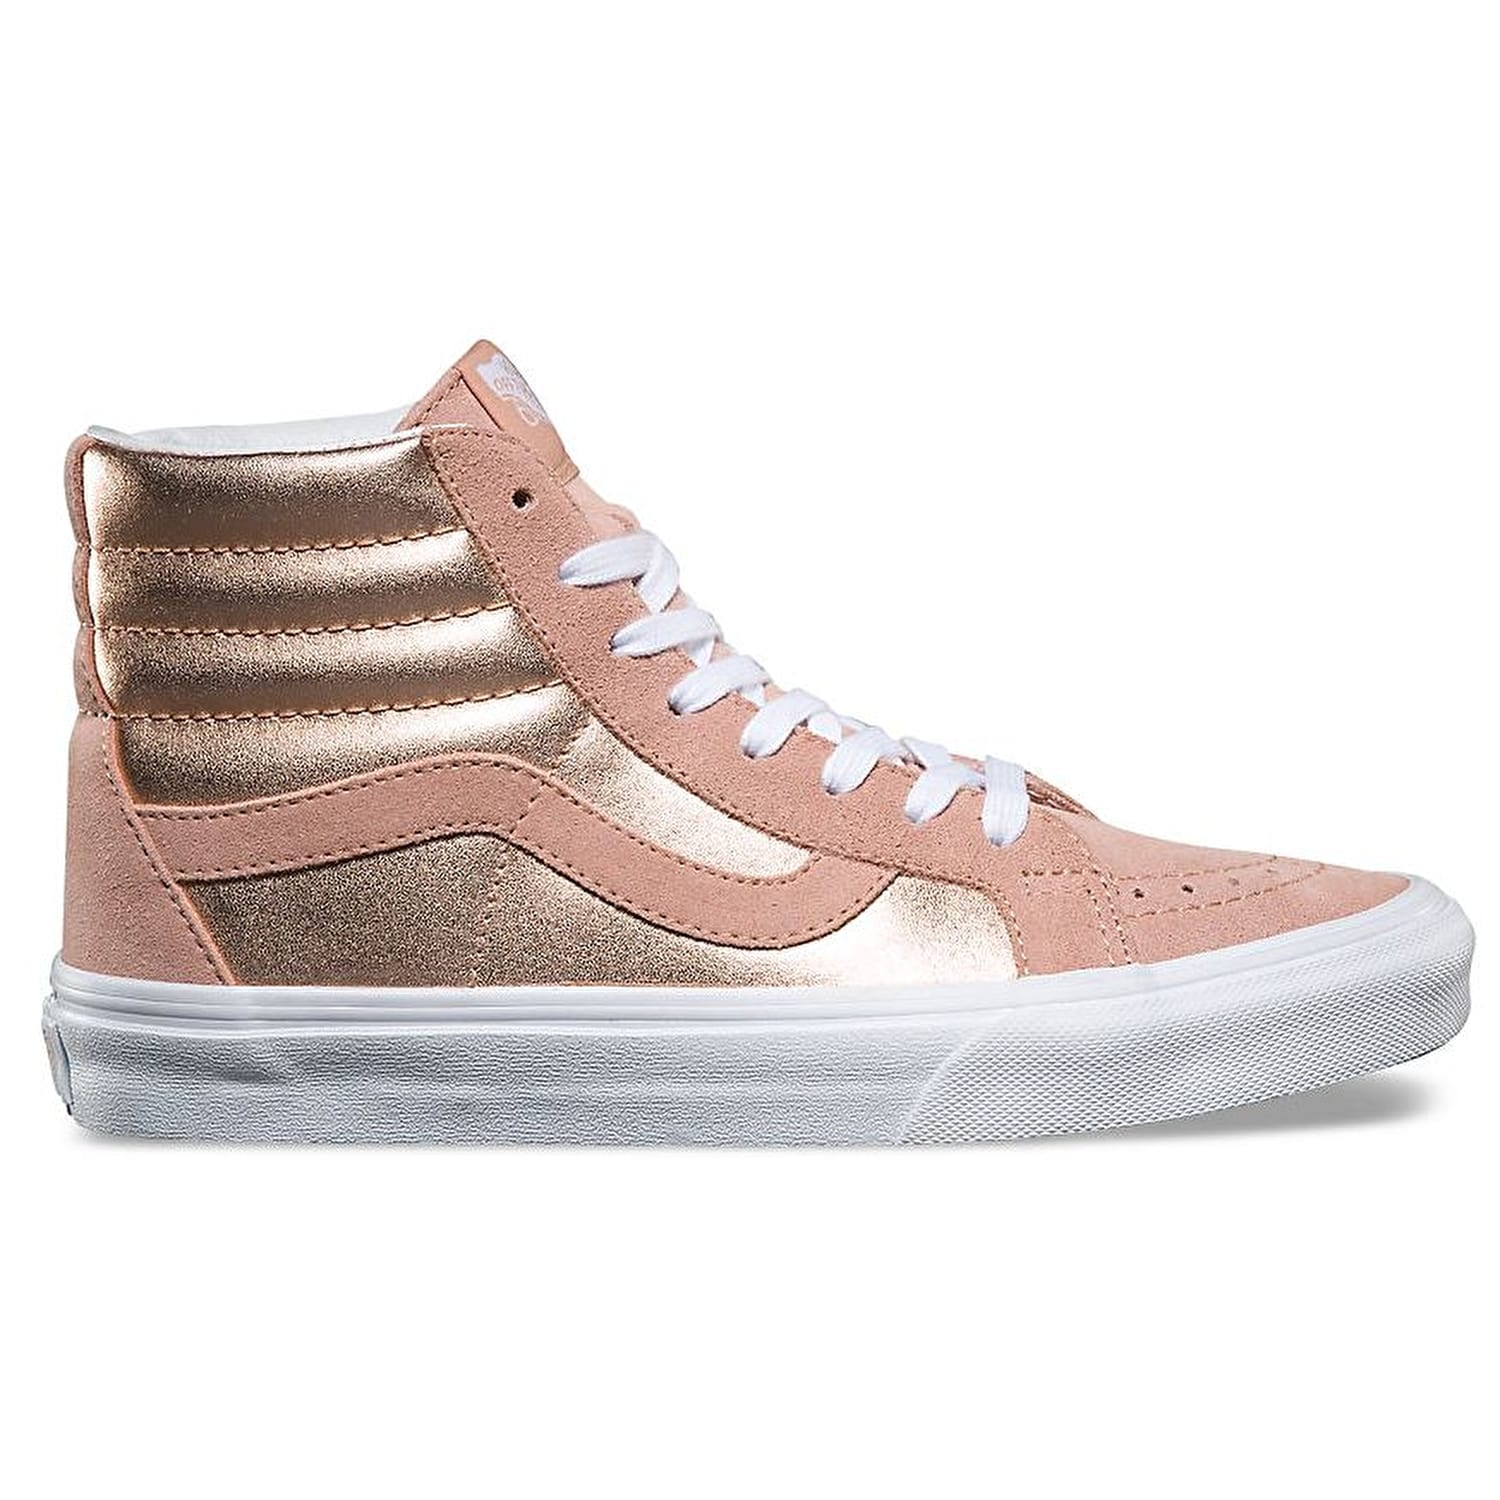 Vans SK8-Hi Reissue Mahogany Skate Shoes - (2-Tone Metallic) Mahogany Reissue Rose/True White afa085